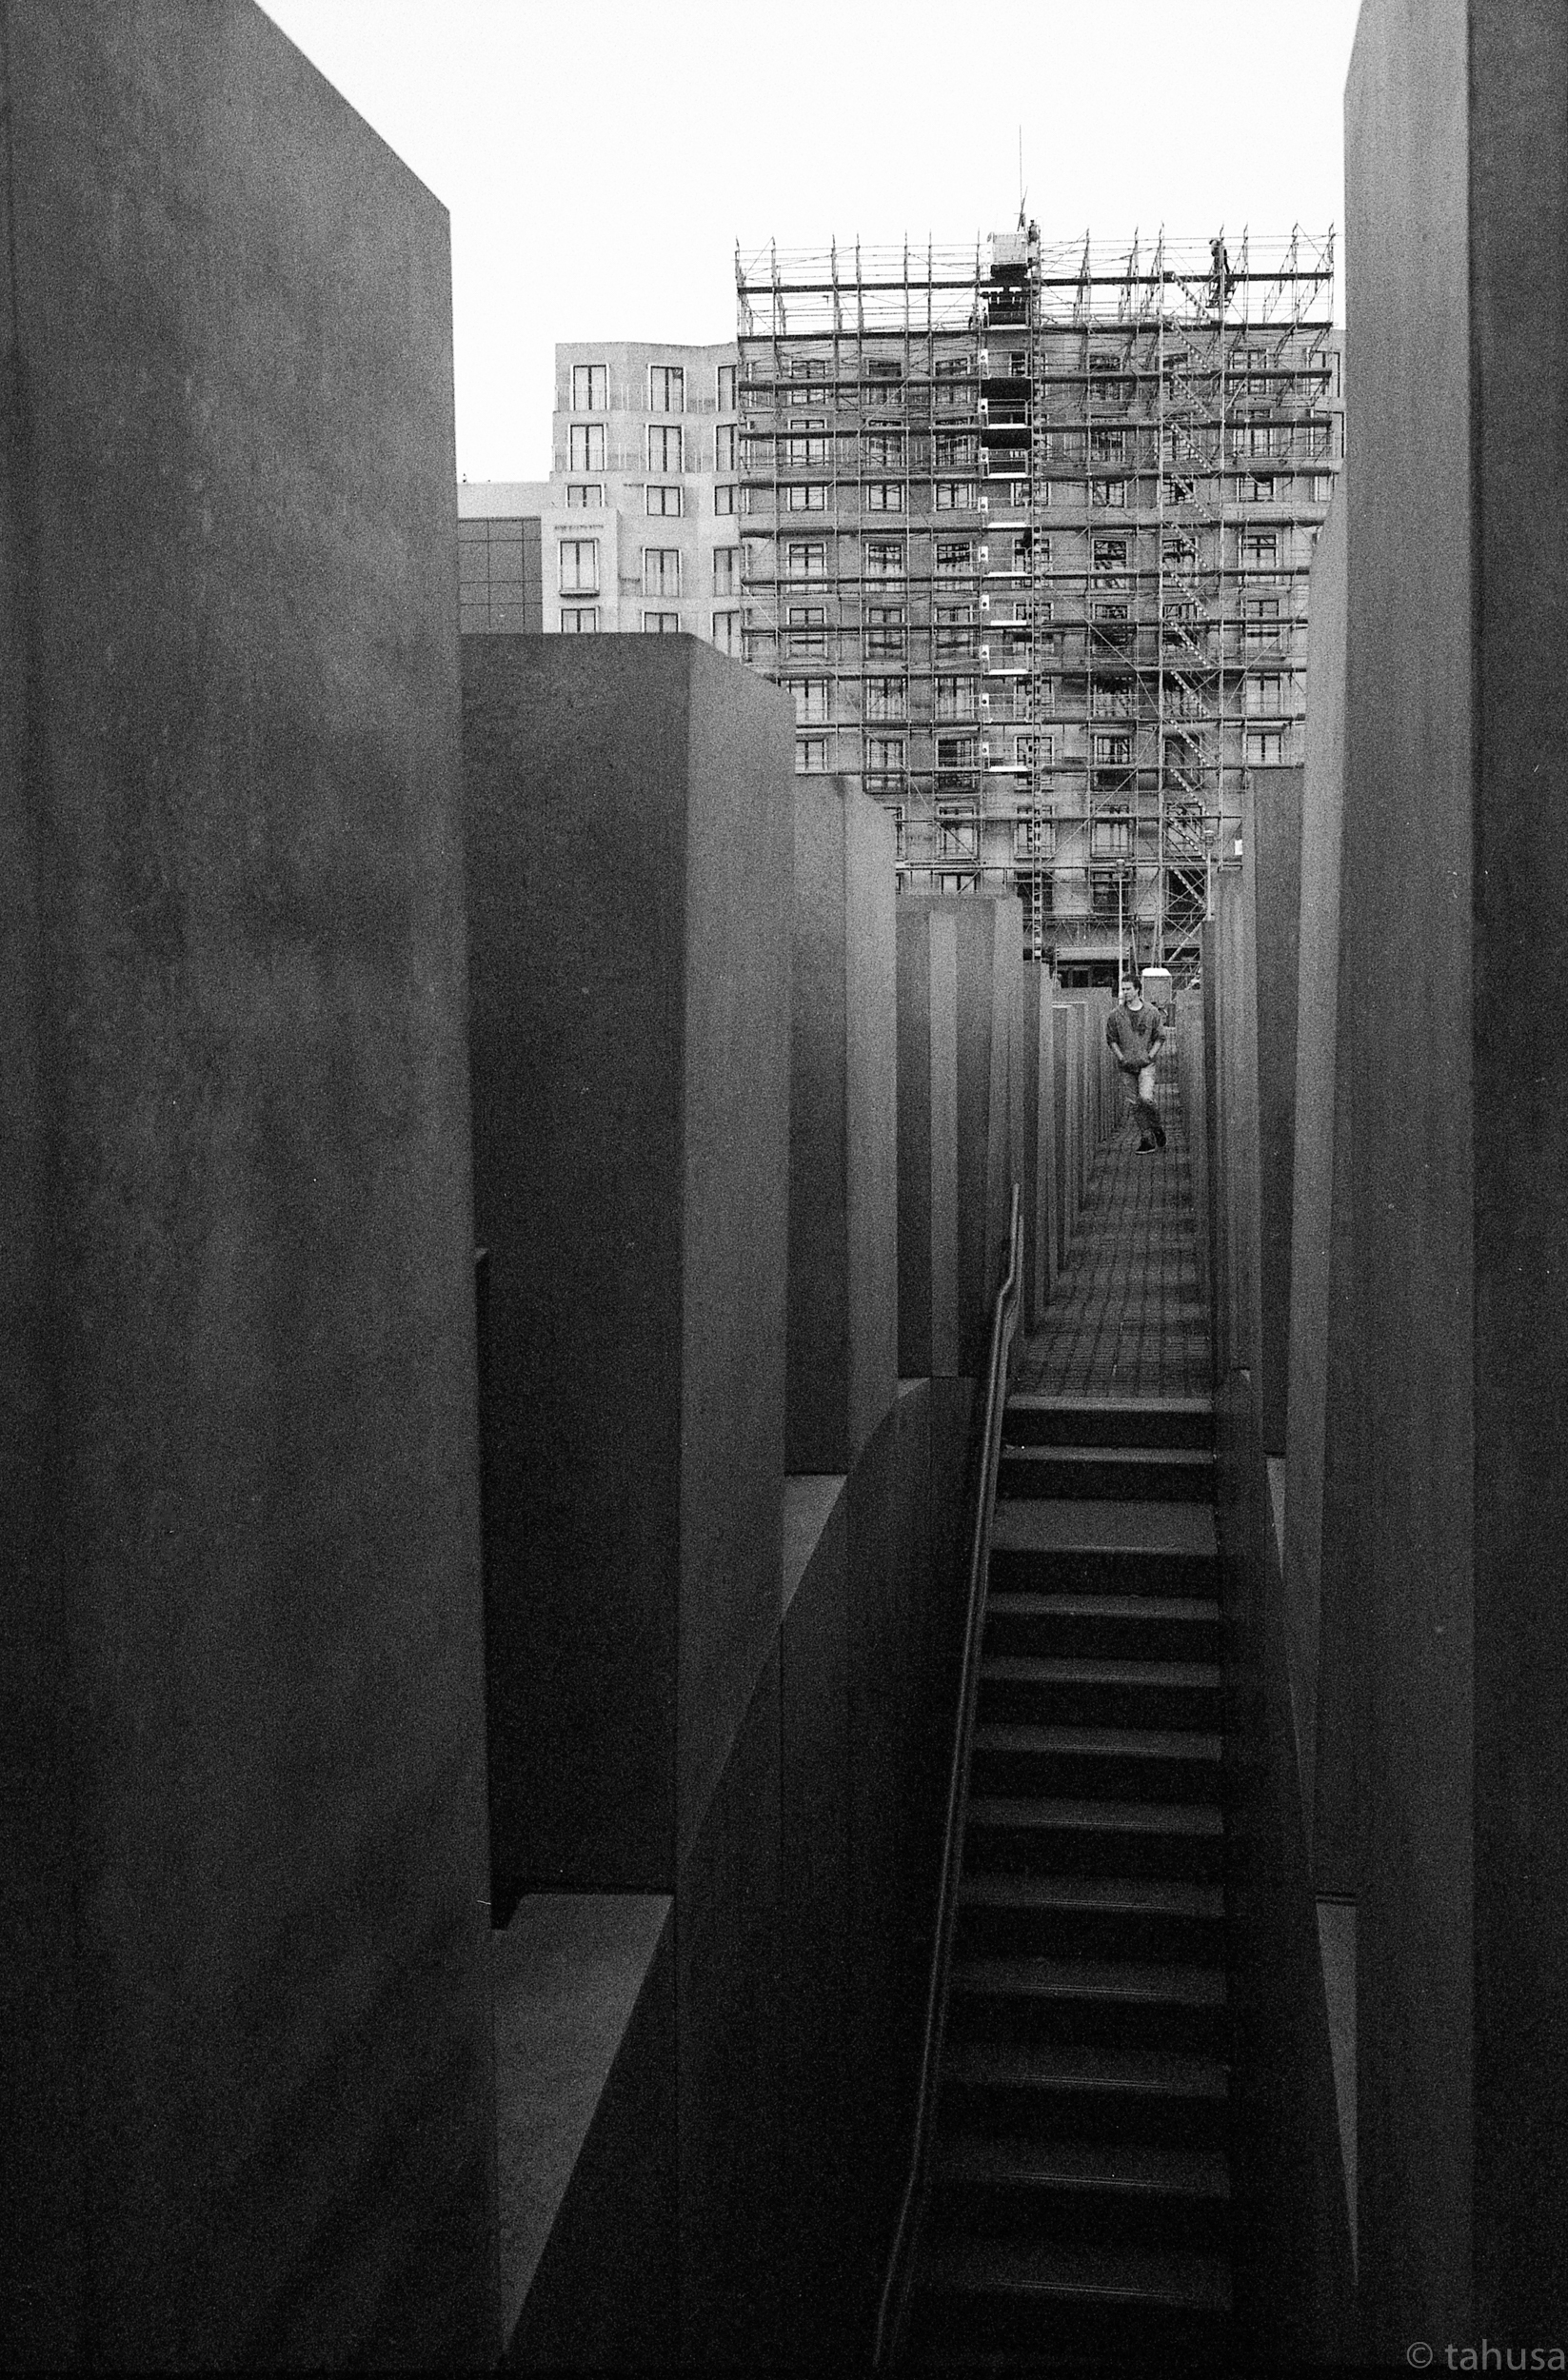 Holocaust-Berlin-travel-visit-Black-and-white-analog-film-leica-summicron-35mm-f2-35-v1-Kentmere-400-iso400-film-review